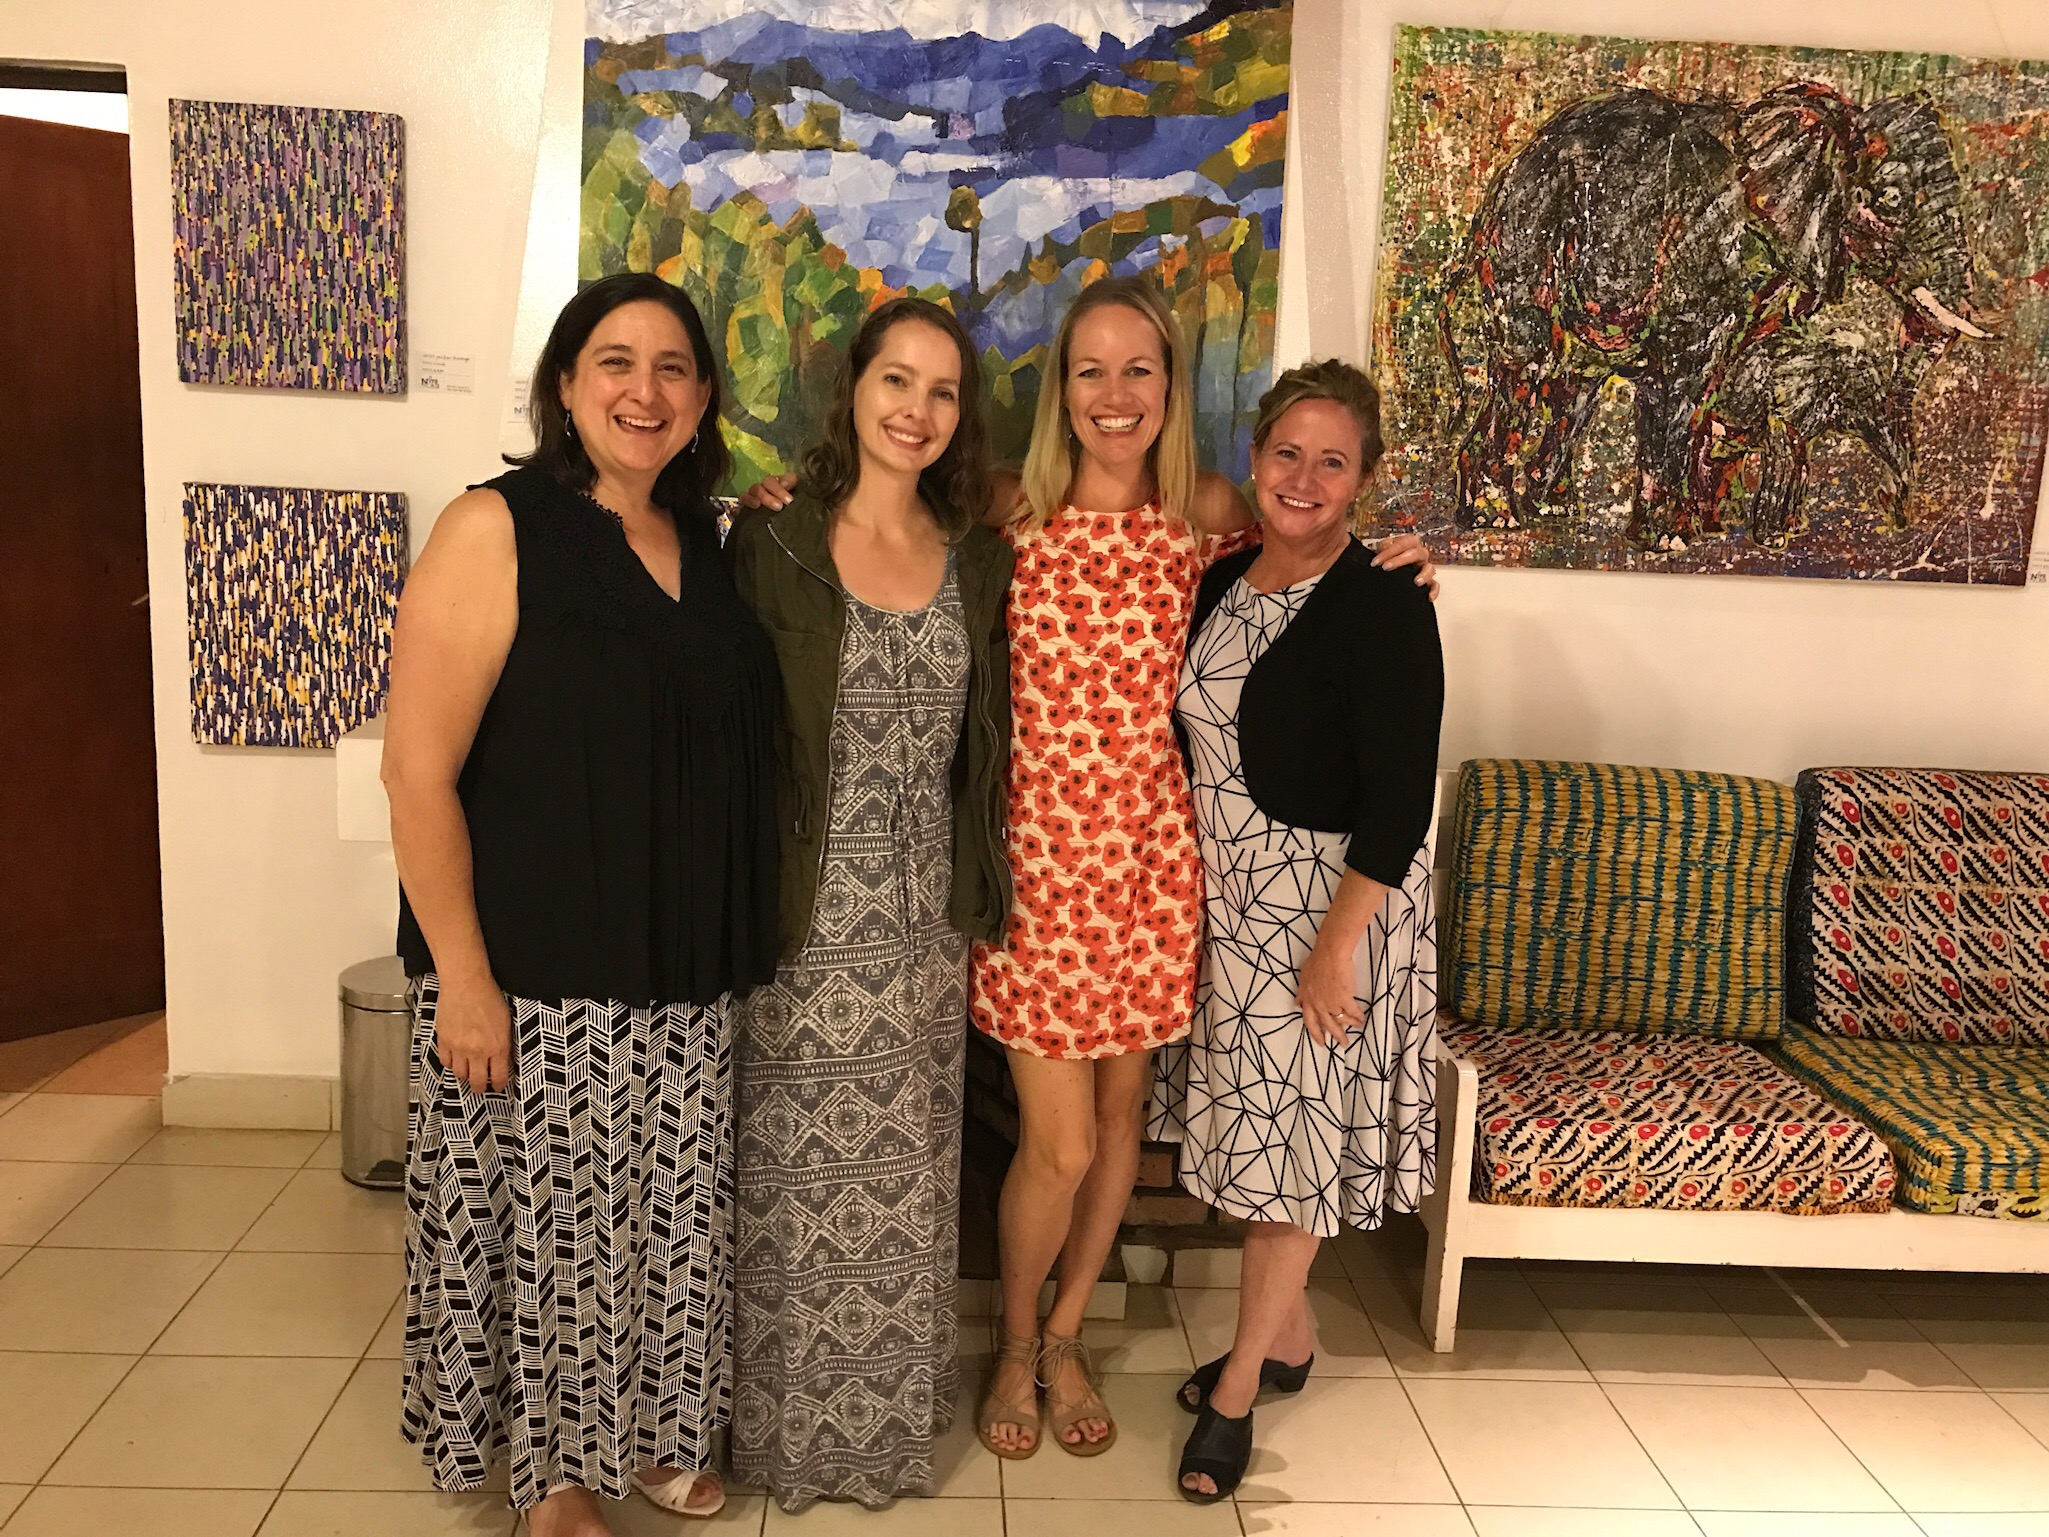 We're celebrating in RWANDA that we all met each other on a trip to GREECE several years ago and have made amazing memories together in various countries since then!  From left to right: Miriam, Courtney, Shasta, and Angie.